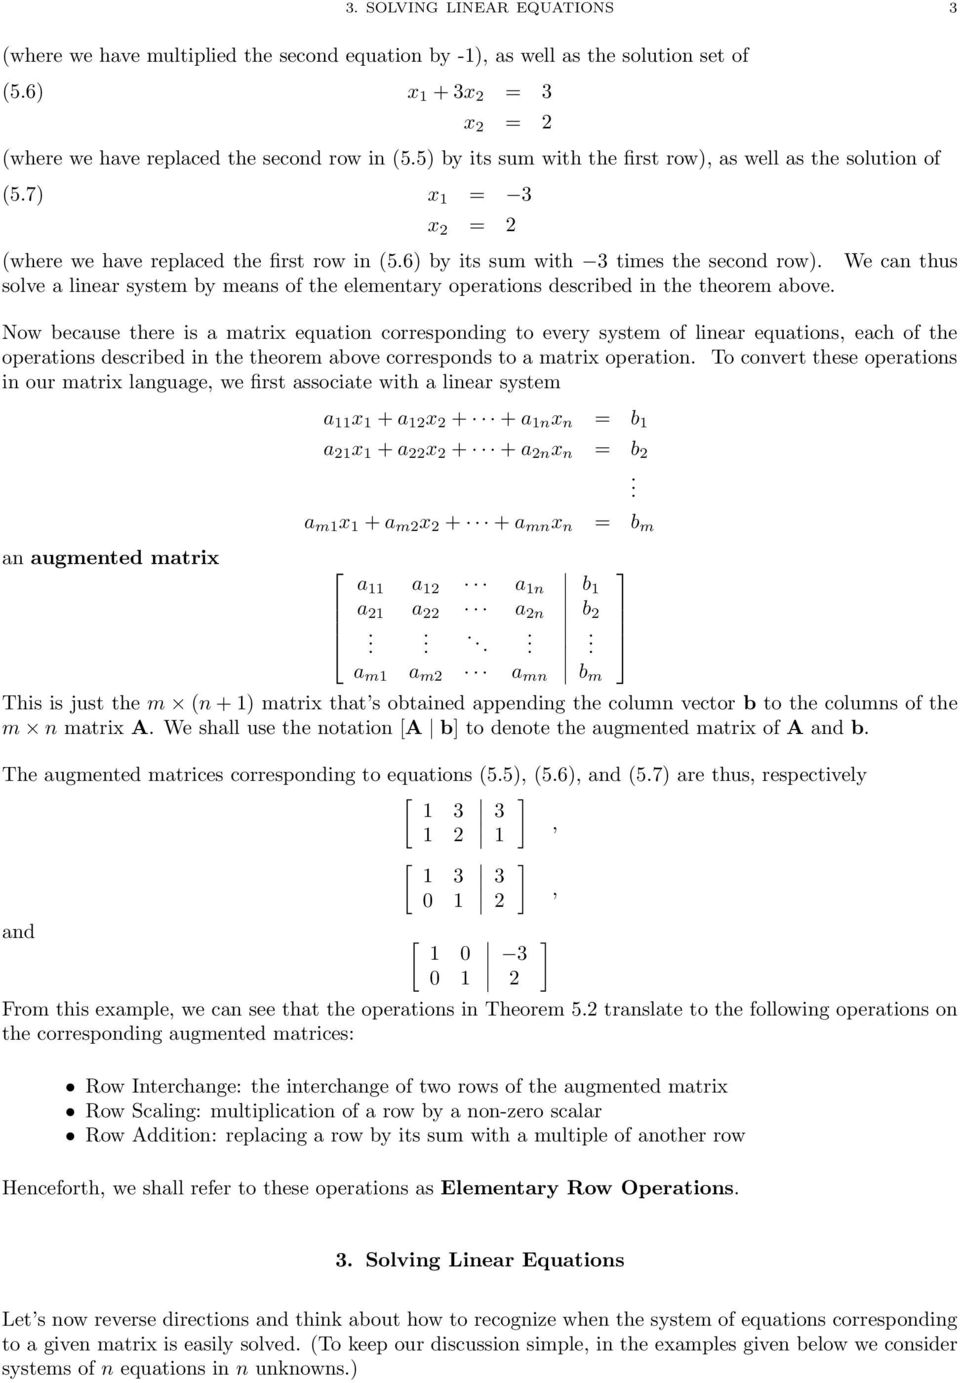 elementary operations described in the theorem above Now because there is a matrix equation corresponding to every system of linear equations, each of the operations described in the theorem above